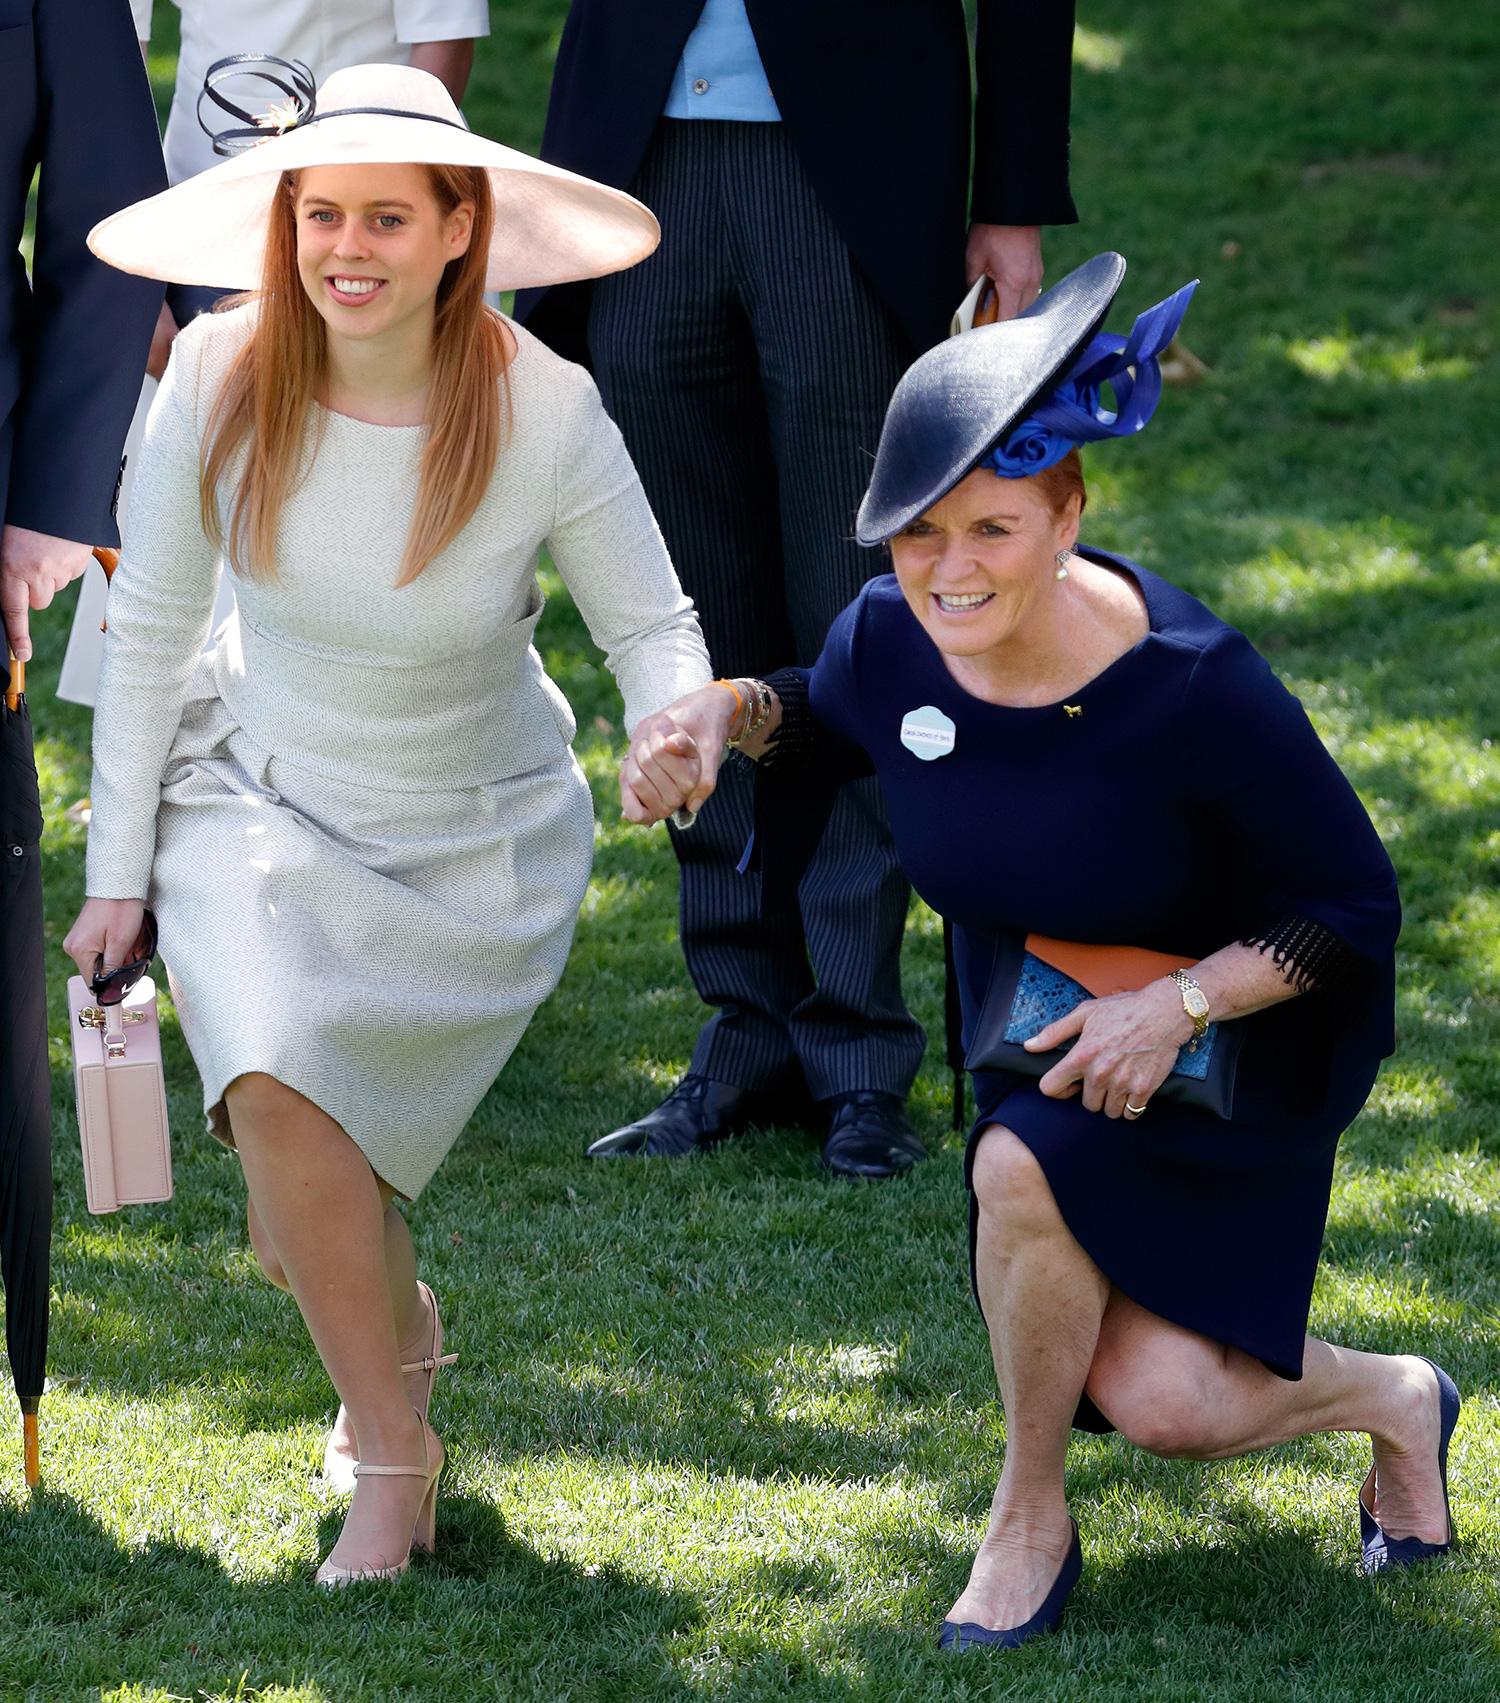 Princess Beatrice and Sarah, Duchess of York curtsy to Queen Elizabeth II as she and her guests pass by in horse drawn carriages on day 4 of Royal Ascot at Ascot Racecourse on June 22, 2018 in Ascot, England